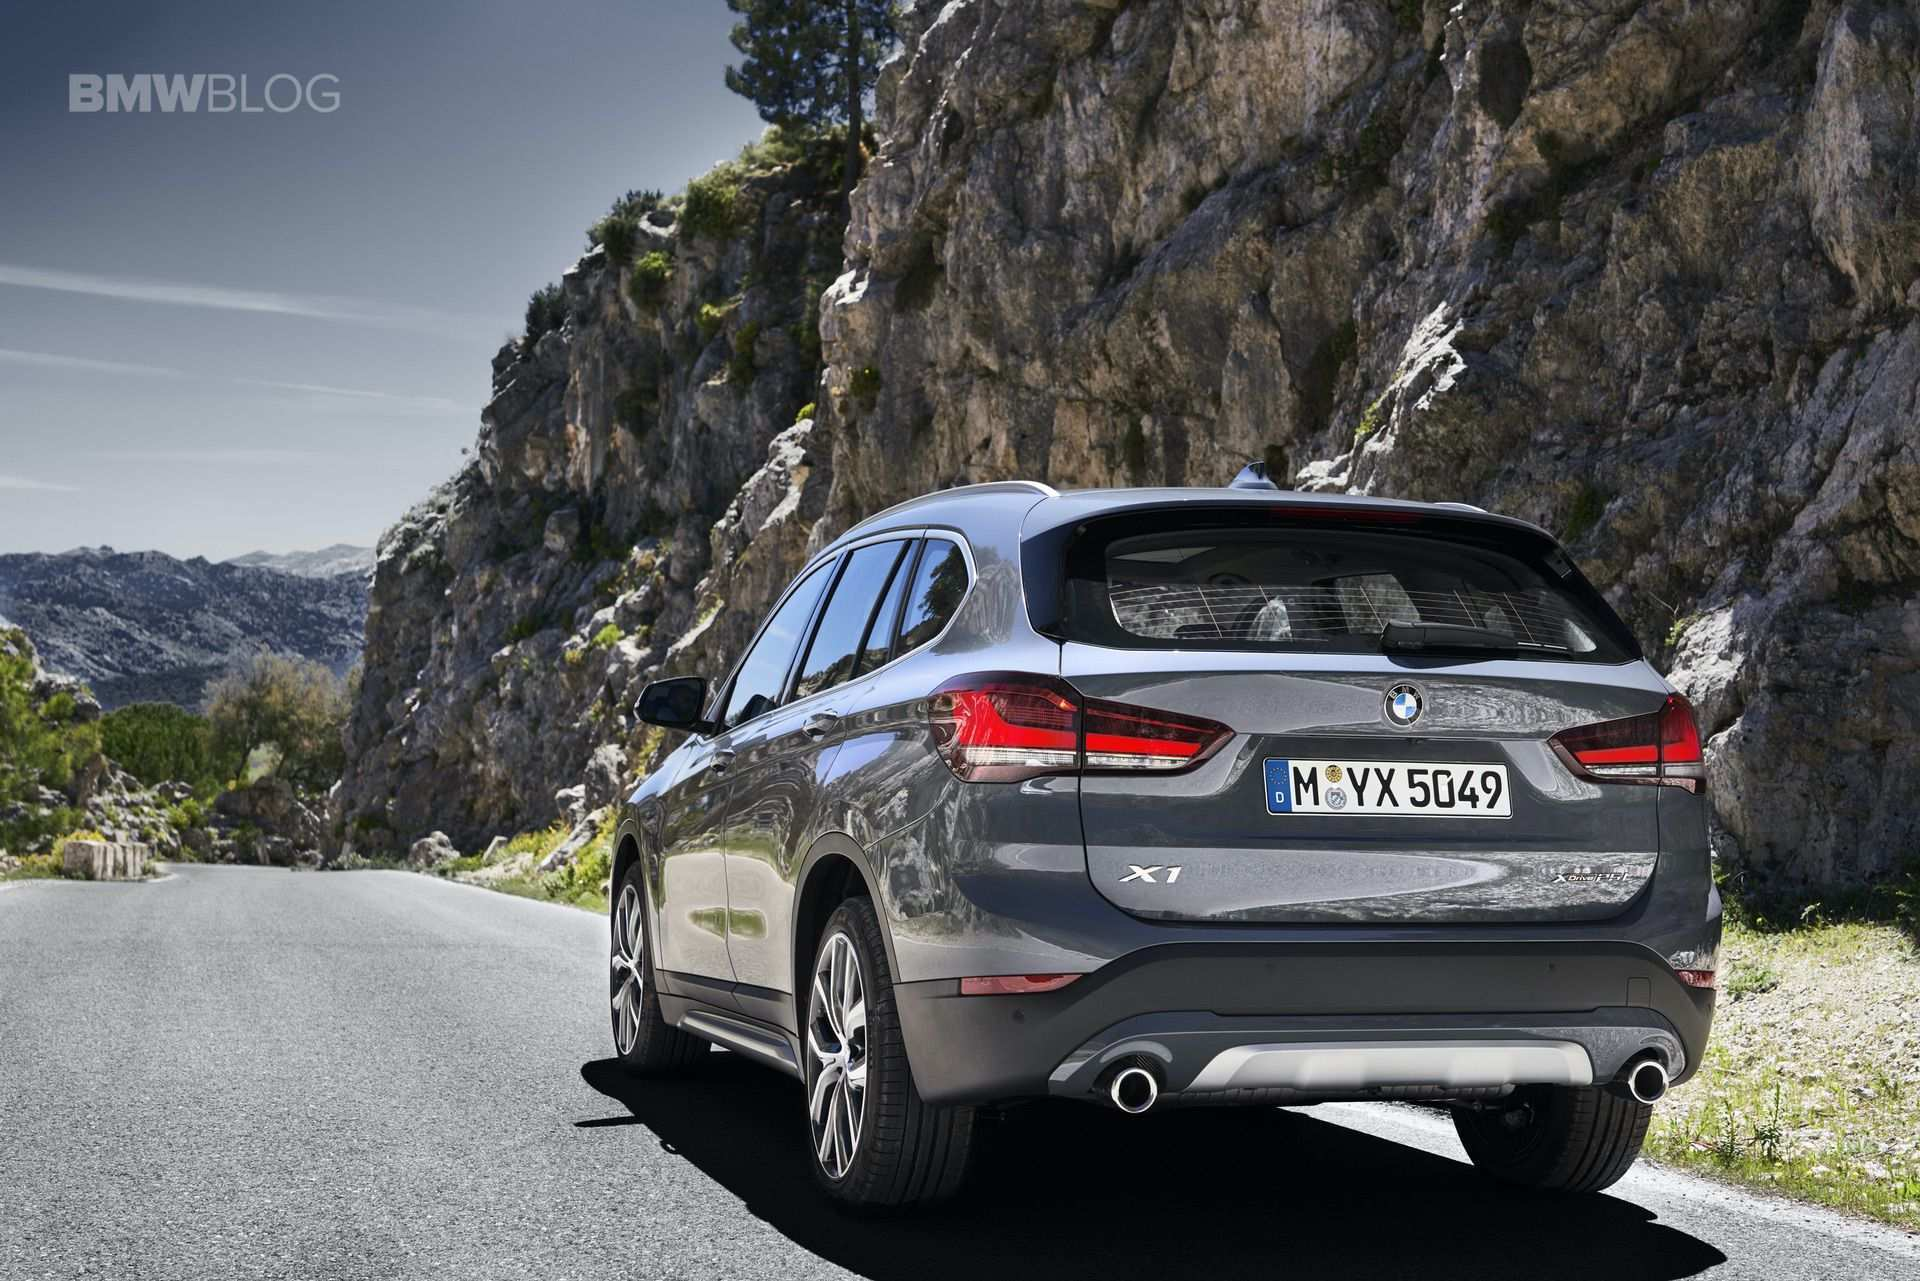 61 All New Bmw X1 2020 Facelift Rumors